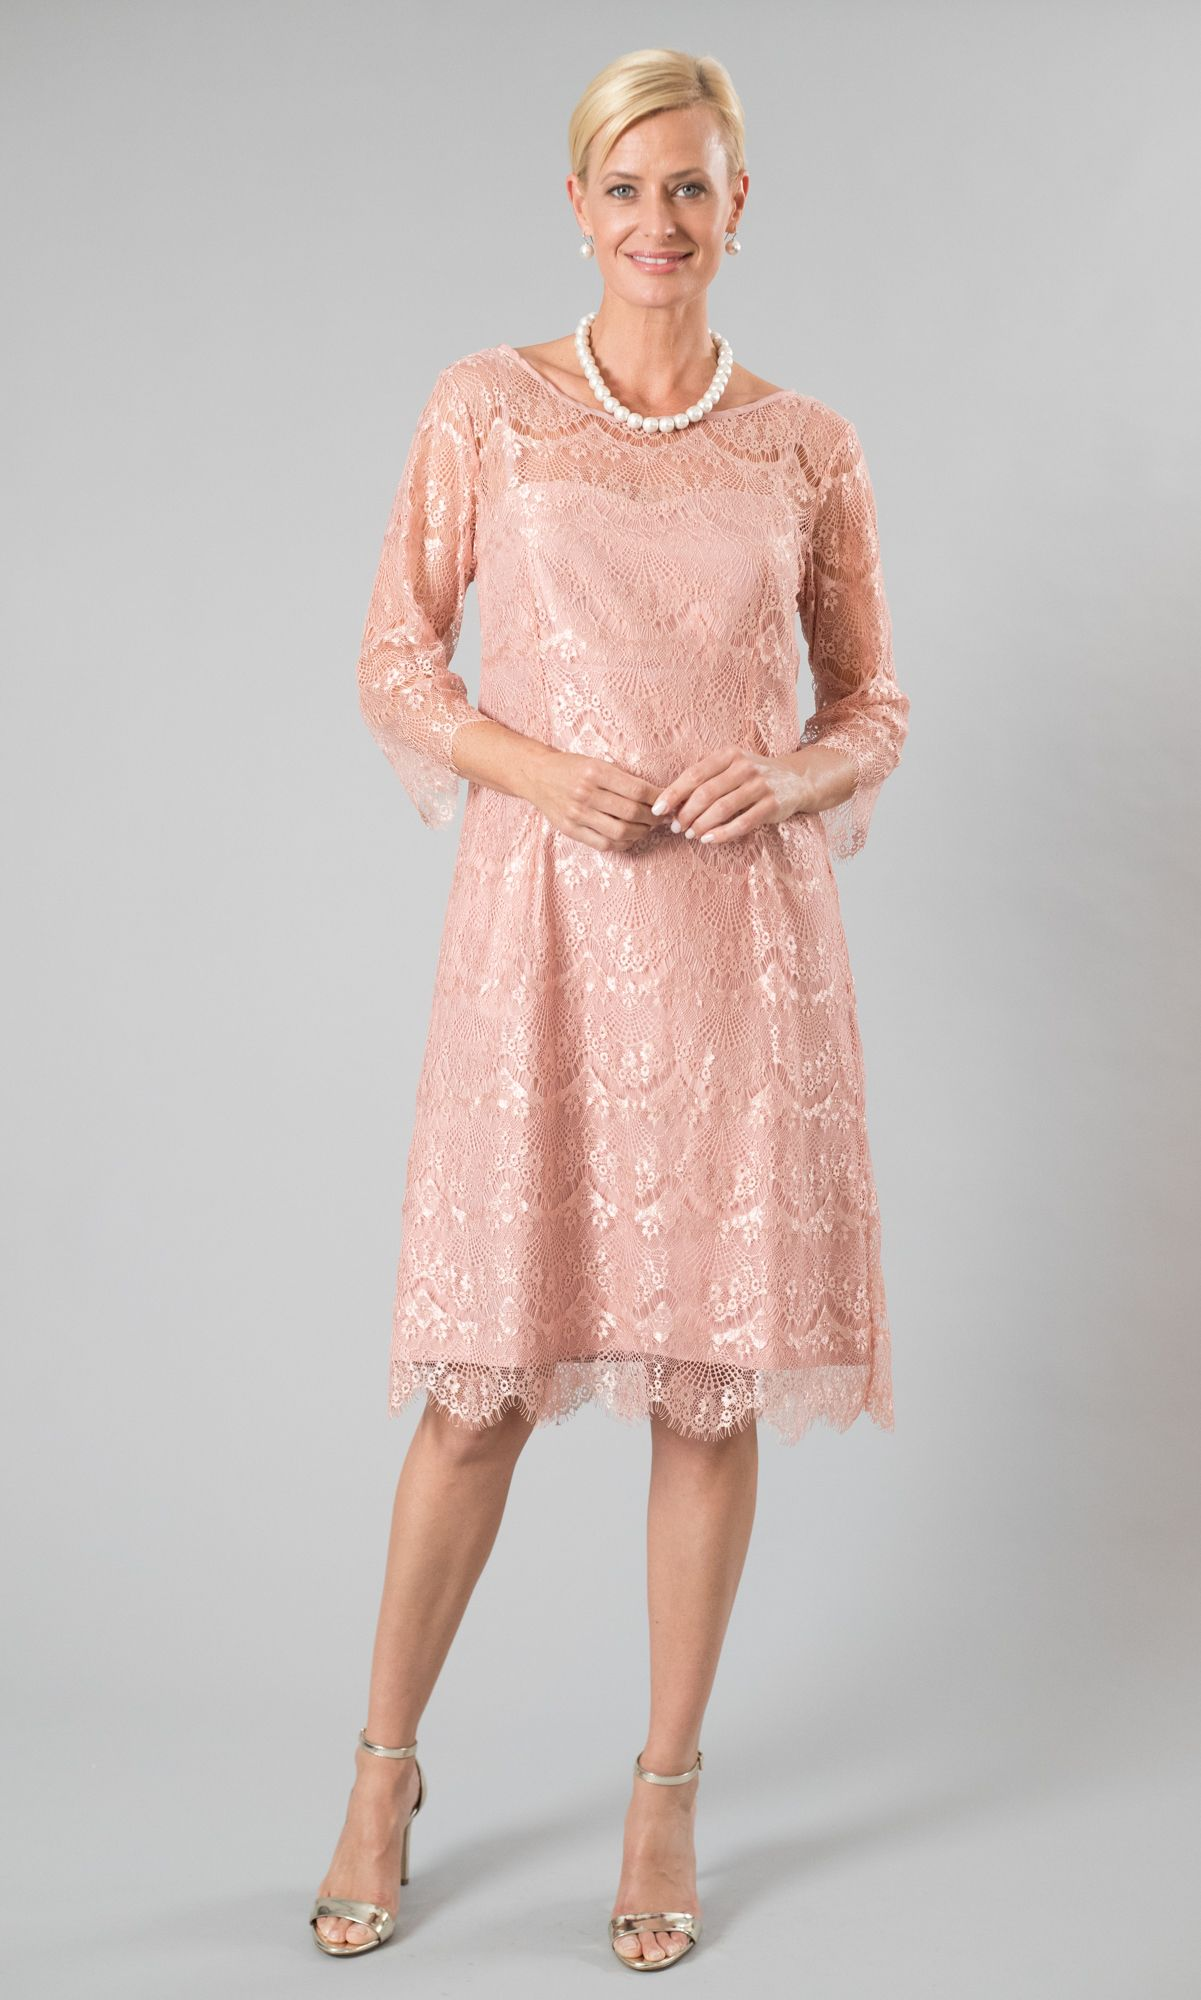 a256f7f700b Living Silk - specialising in dresses and two piece outfits with sleeves  for the modern and elegant mother of the bride and mother of the groom.